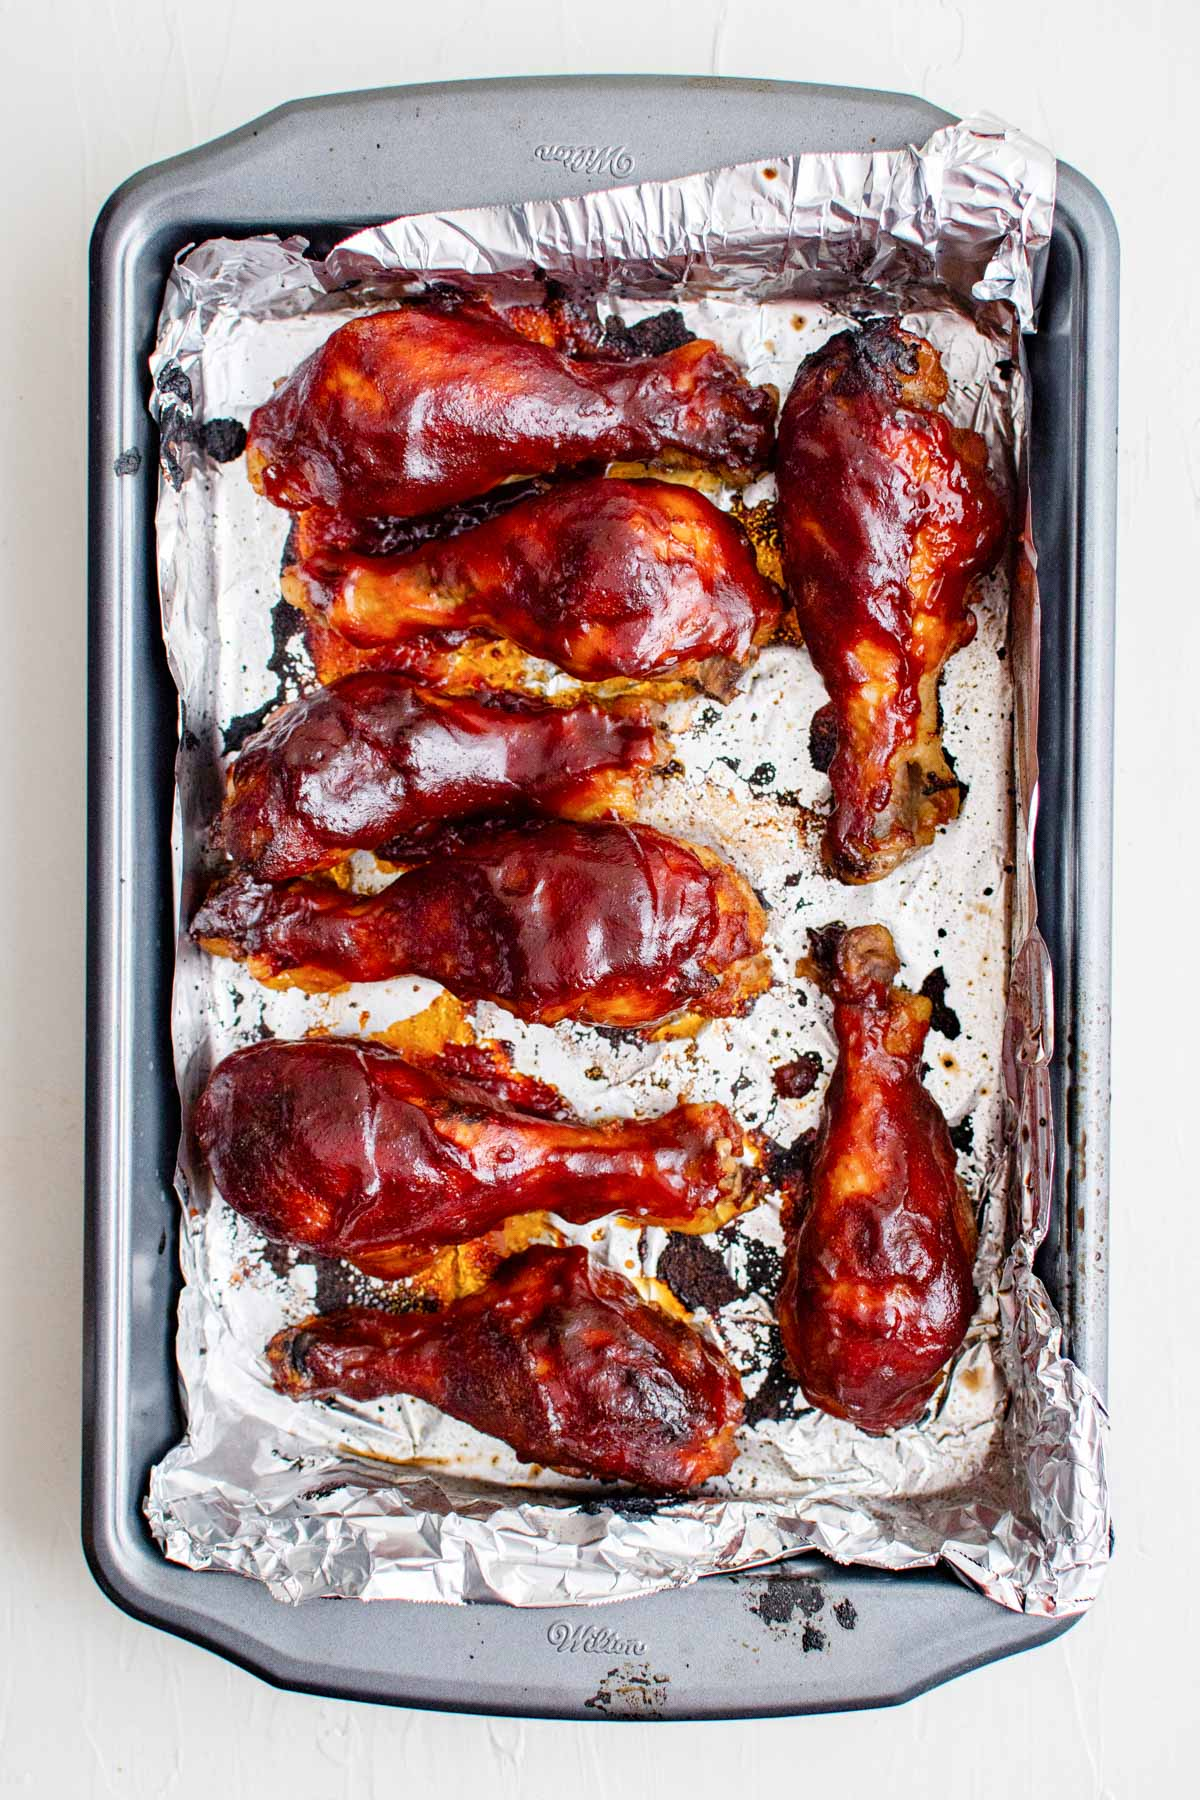 sheet pan with foil, chicken drumsticks with bbq sauce